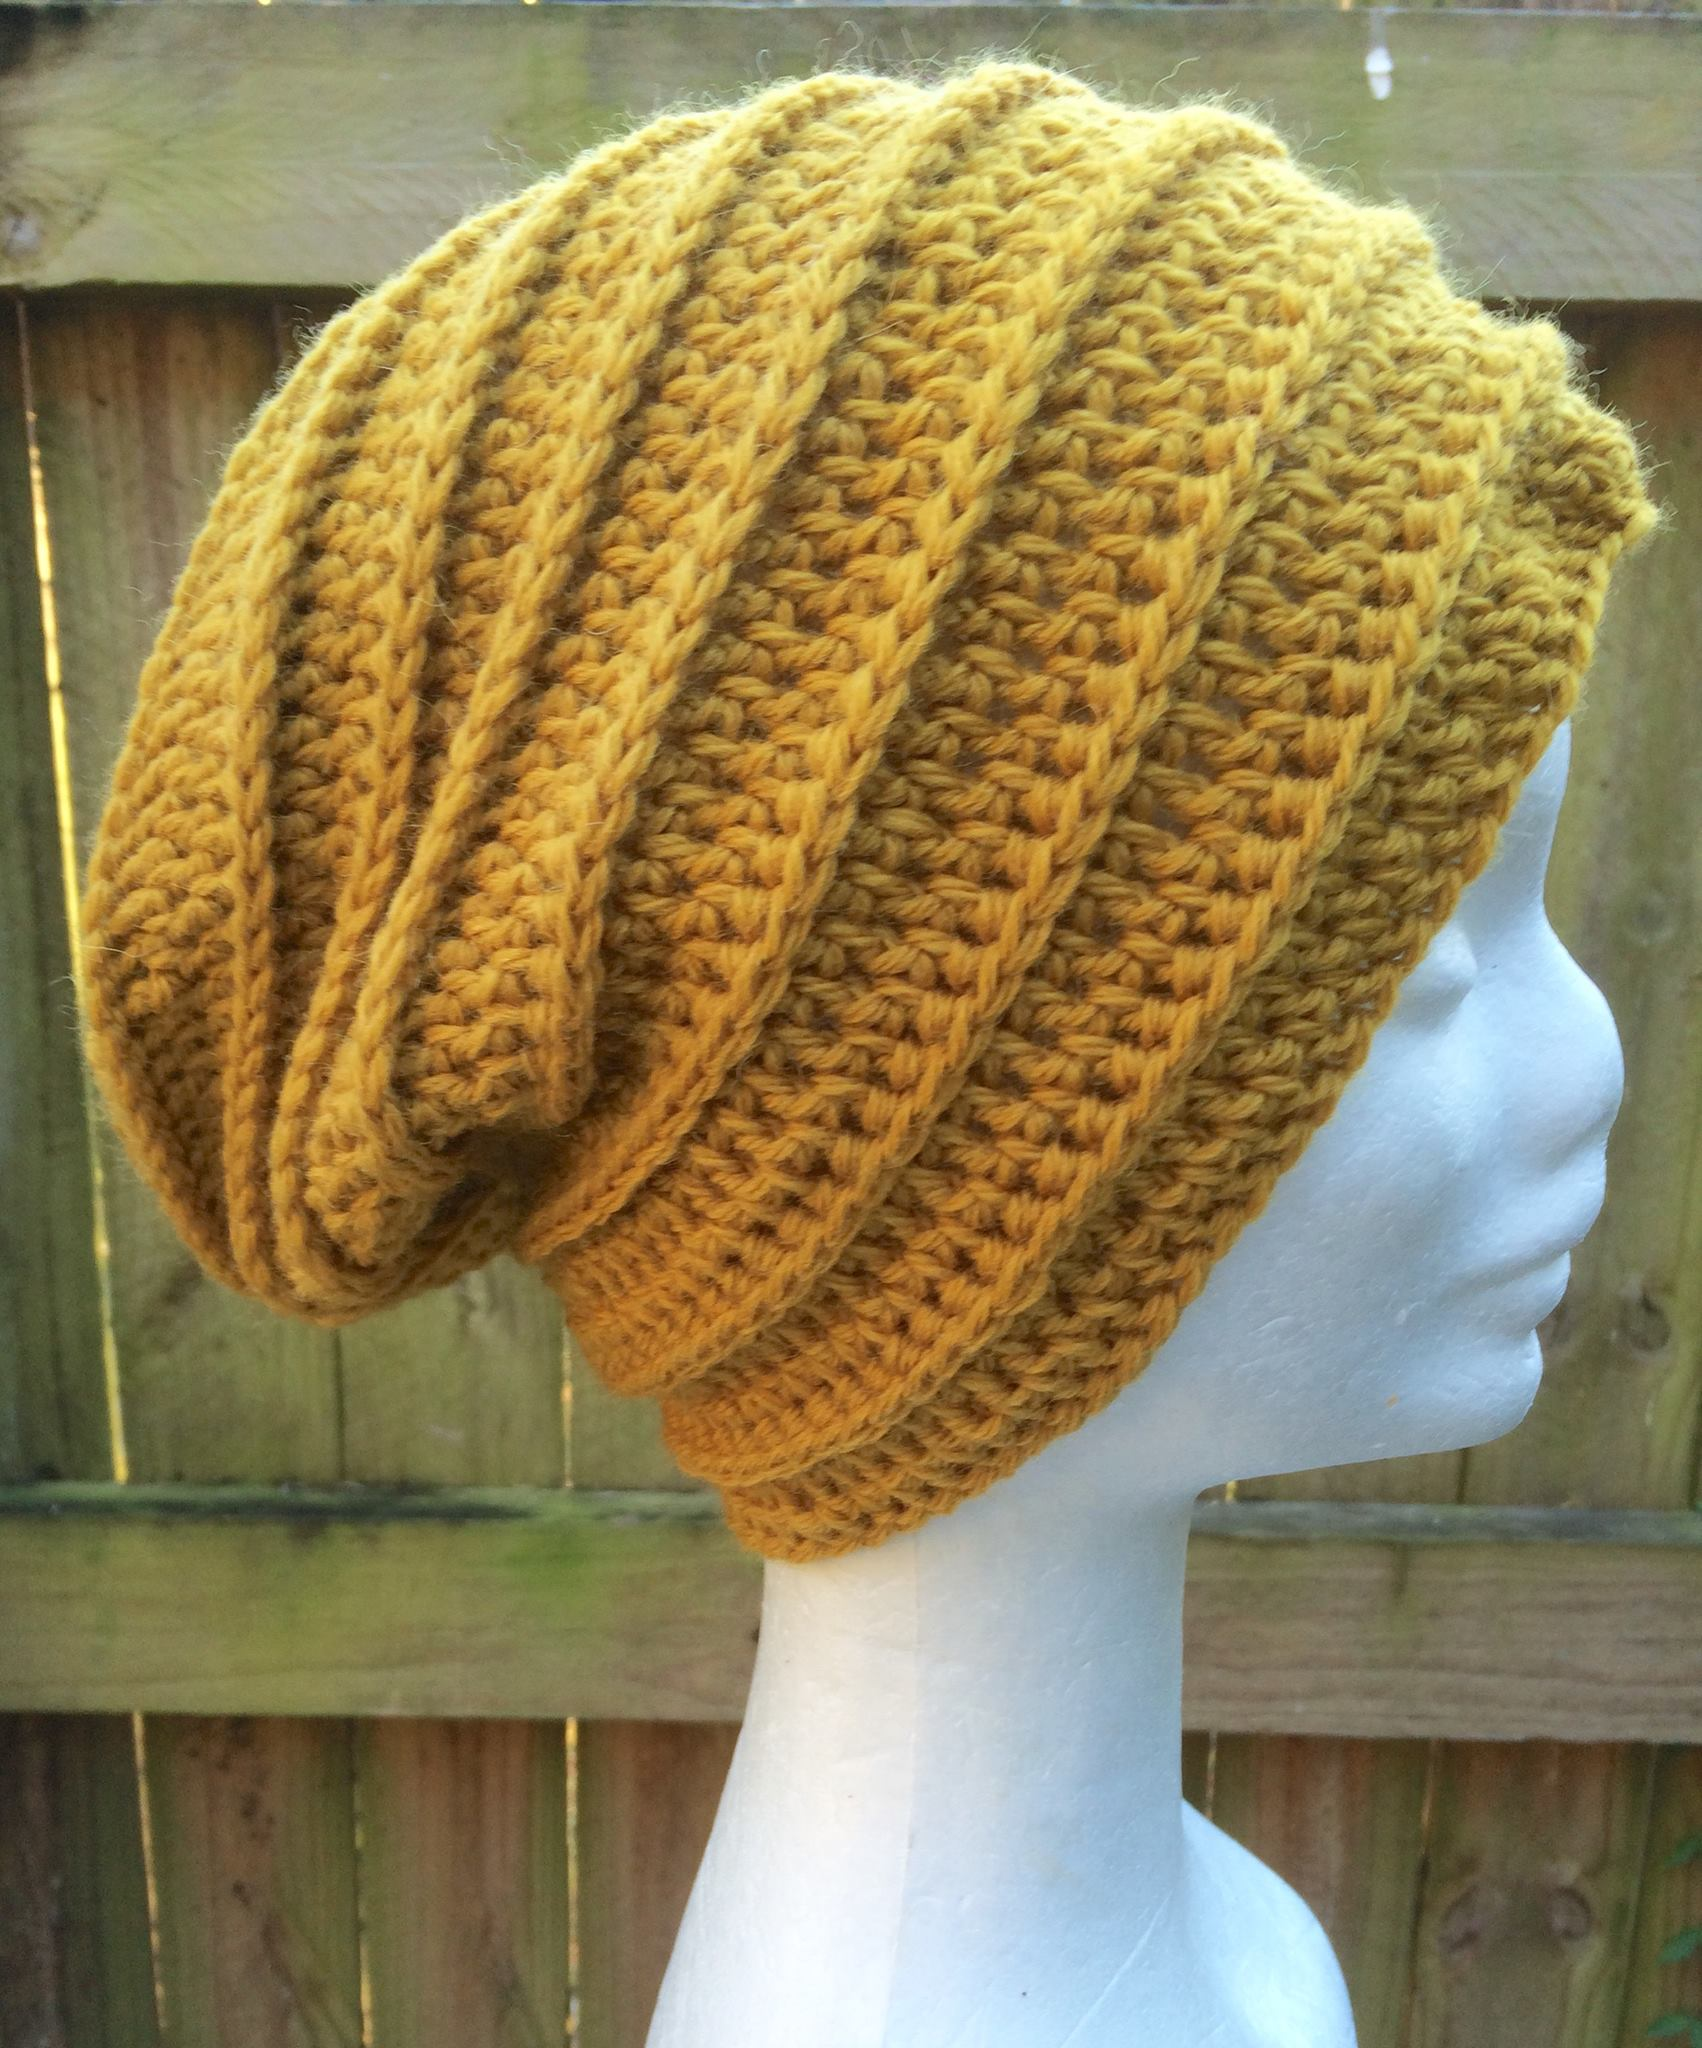 Crocheted Slouchy Beanie In Mustard Yellow With A Textured Ribbed